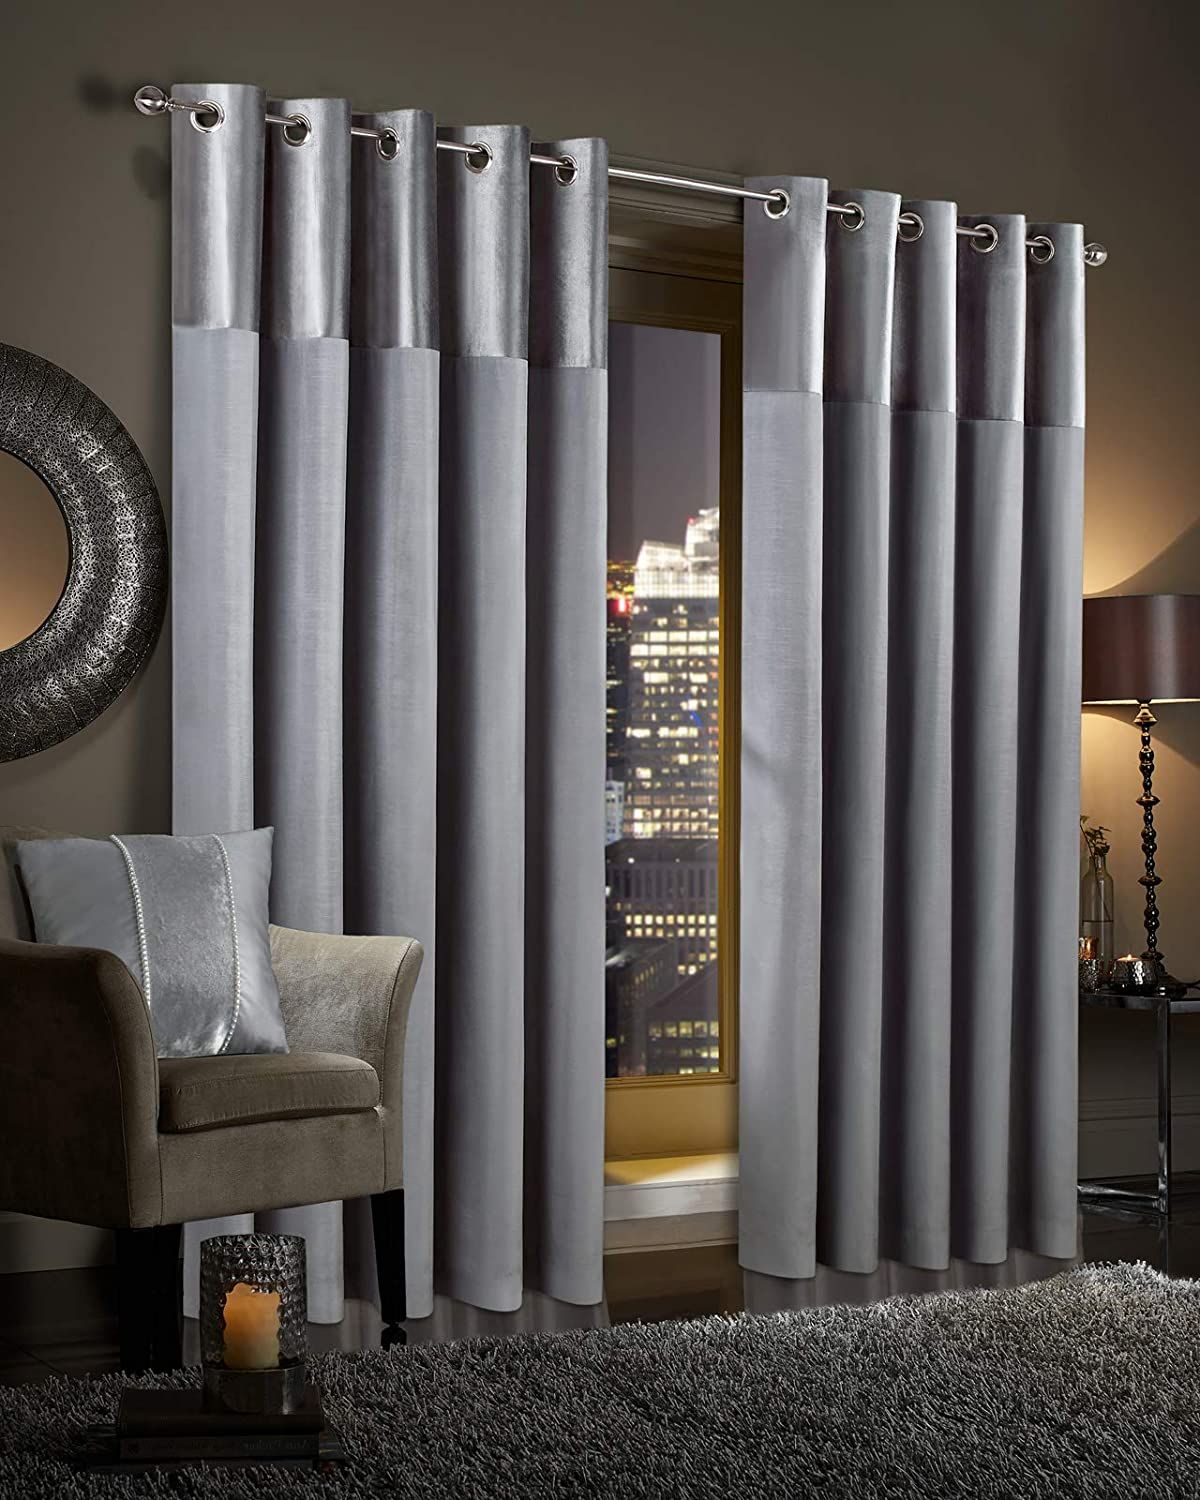 Gran Reno Crushed Velvet Curtains PAIR Faux Silk Fully Lined Eyelet Ring Top Curtains (Silver Grey, 46